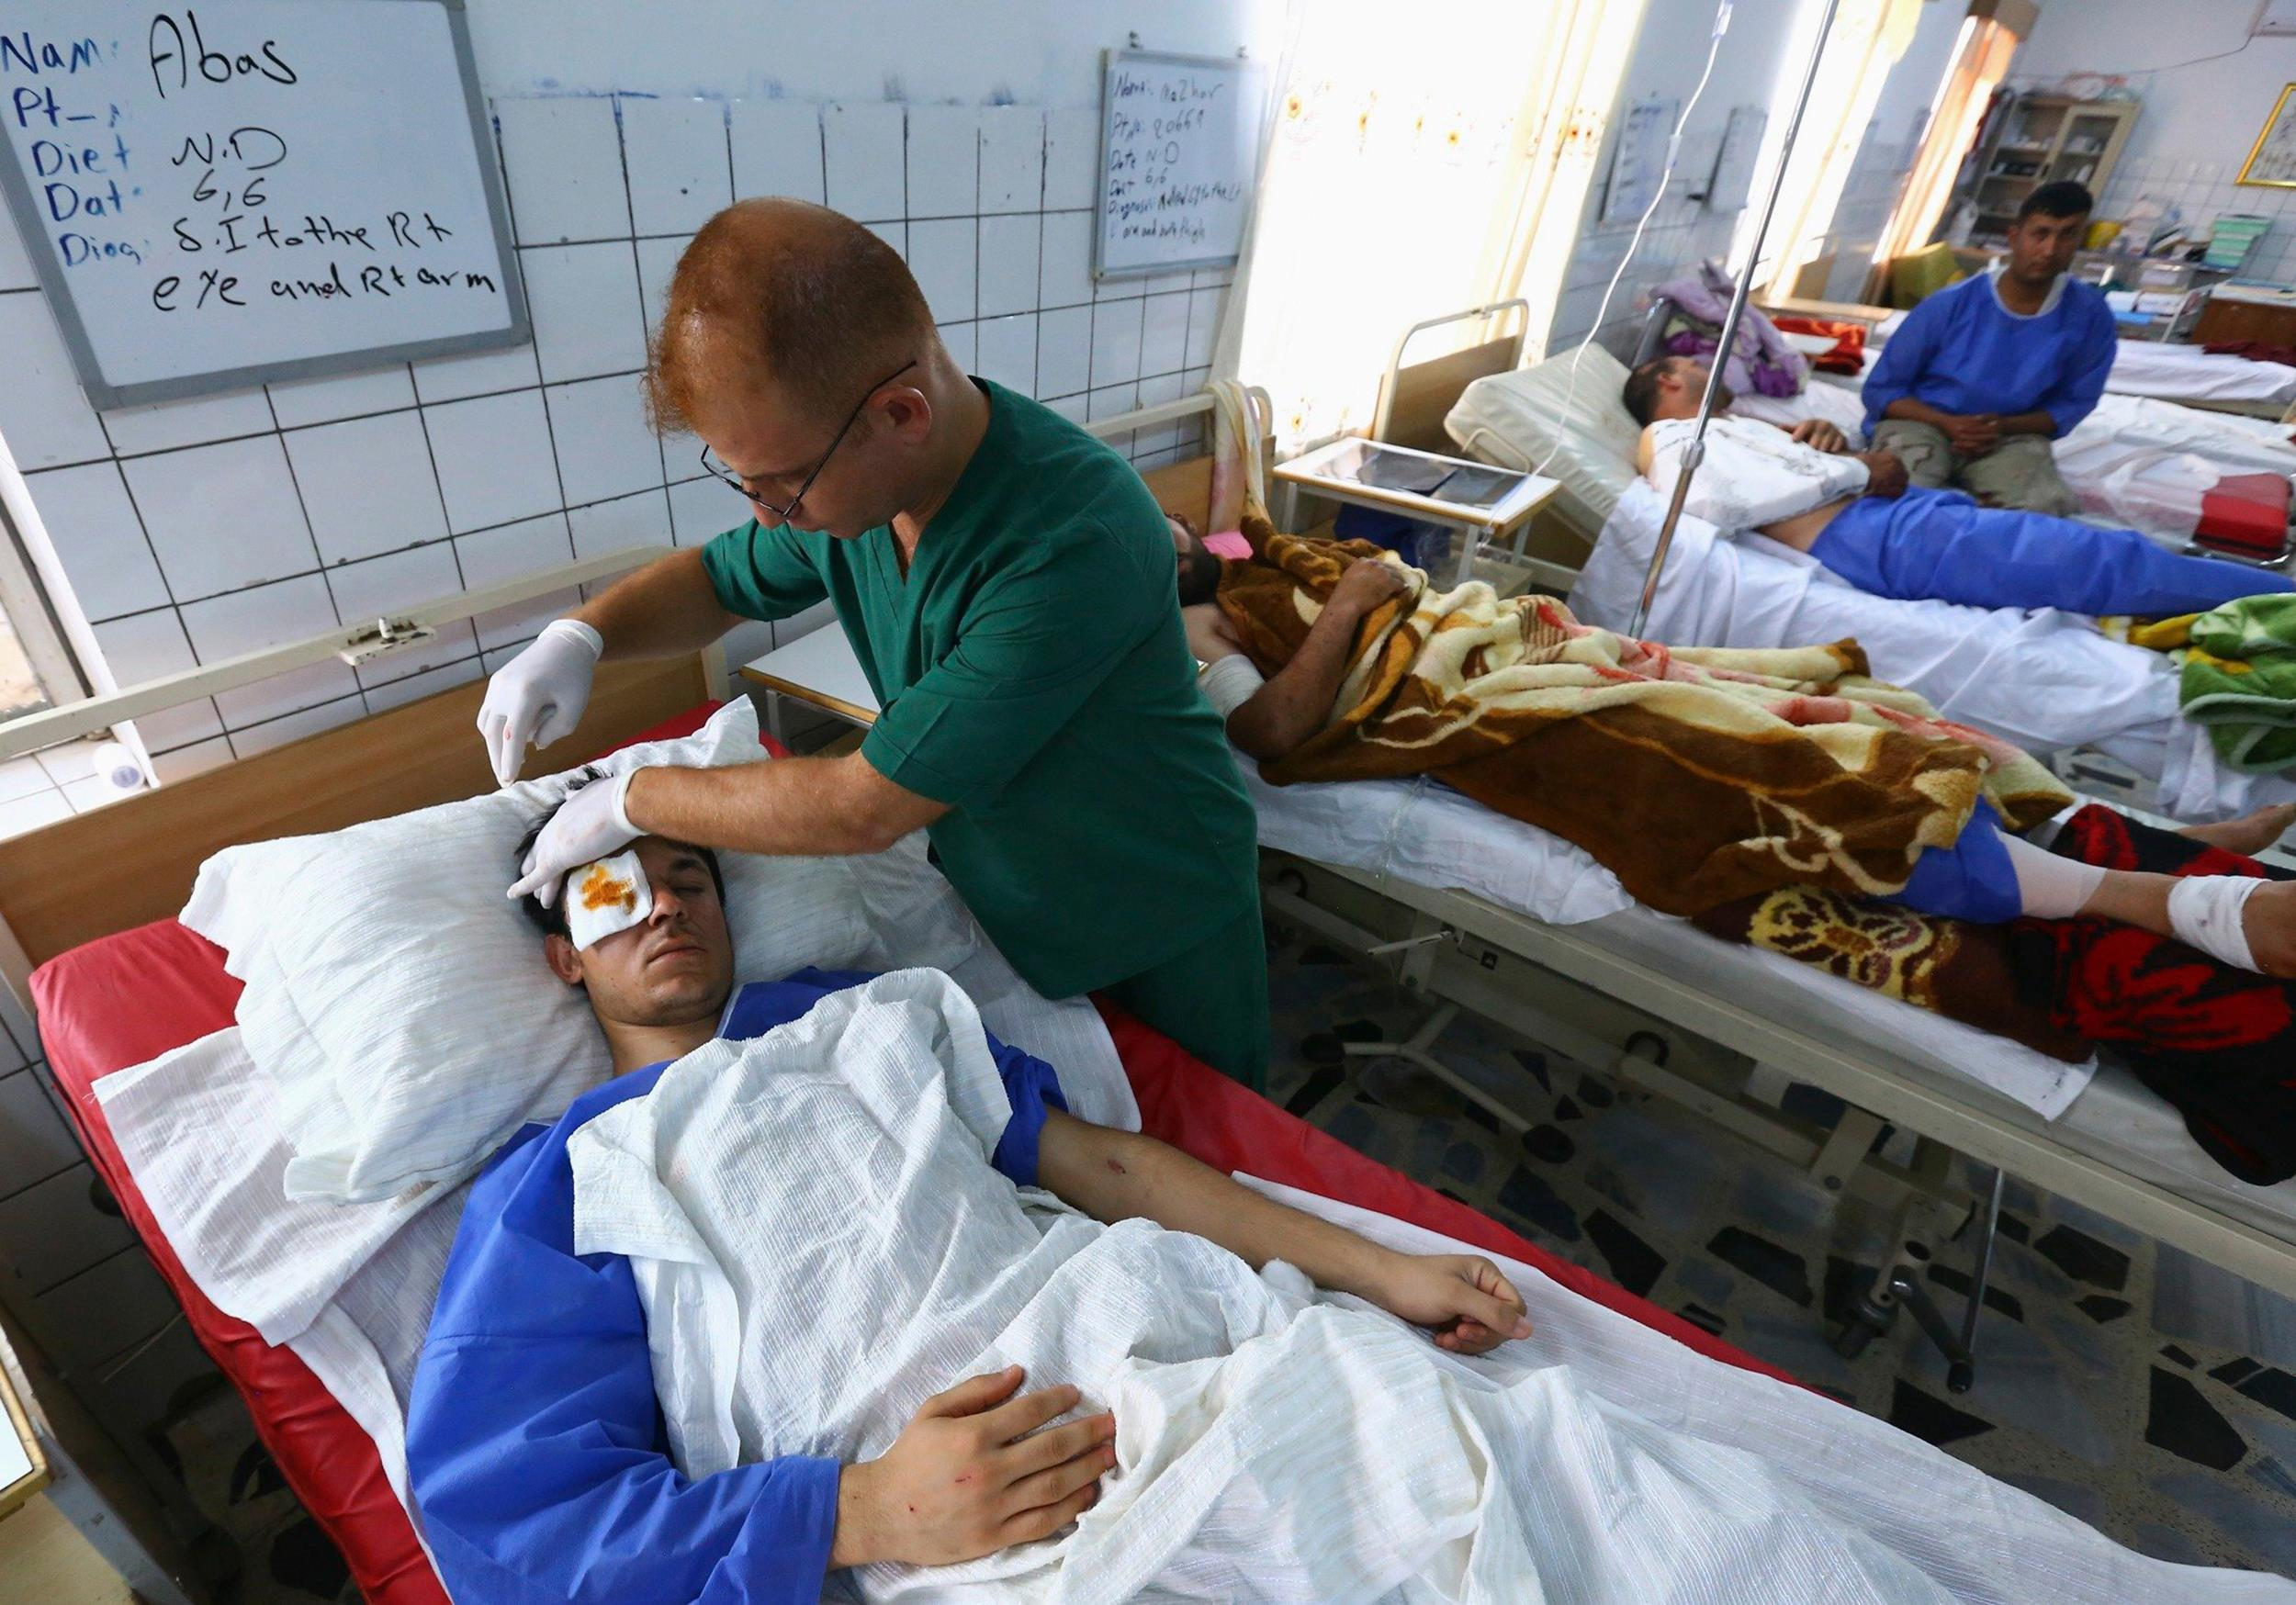 Image: A man, who was injured during a suicide bomber attack in Mwafaqiya village at Mosul, receives treatment in a hospital in Erbil